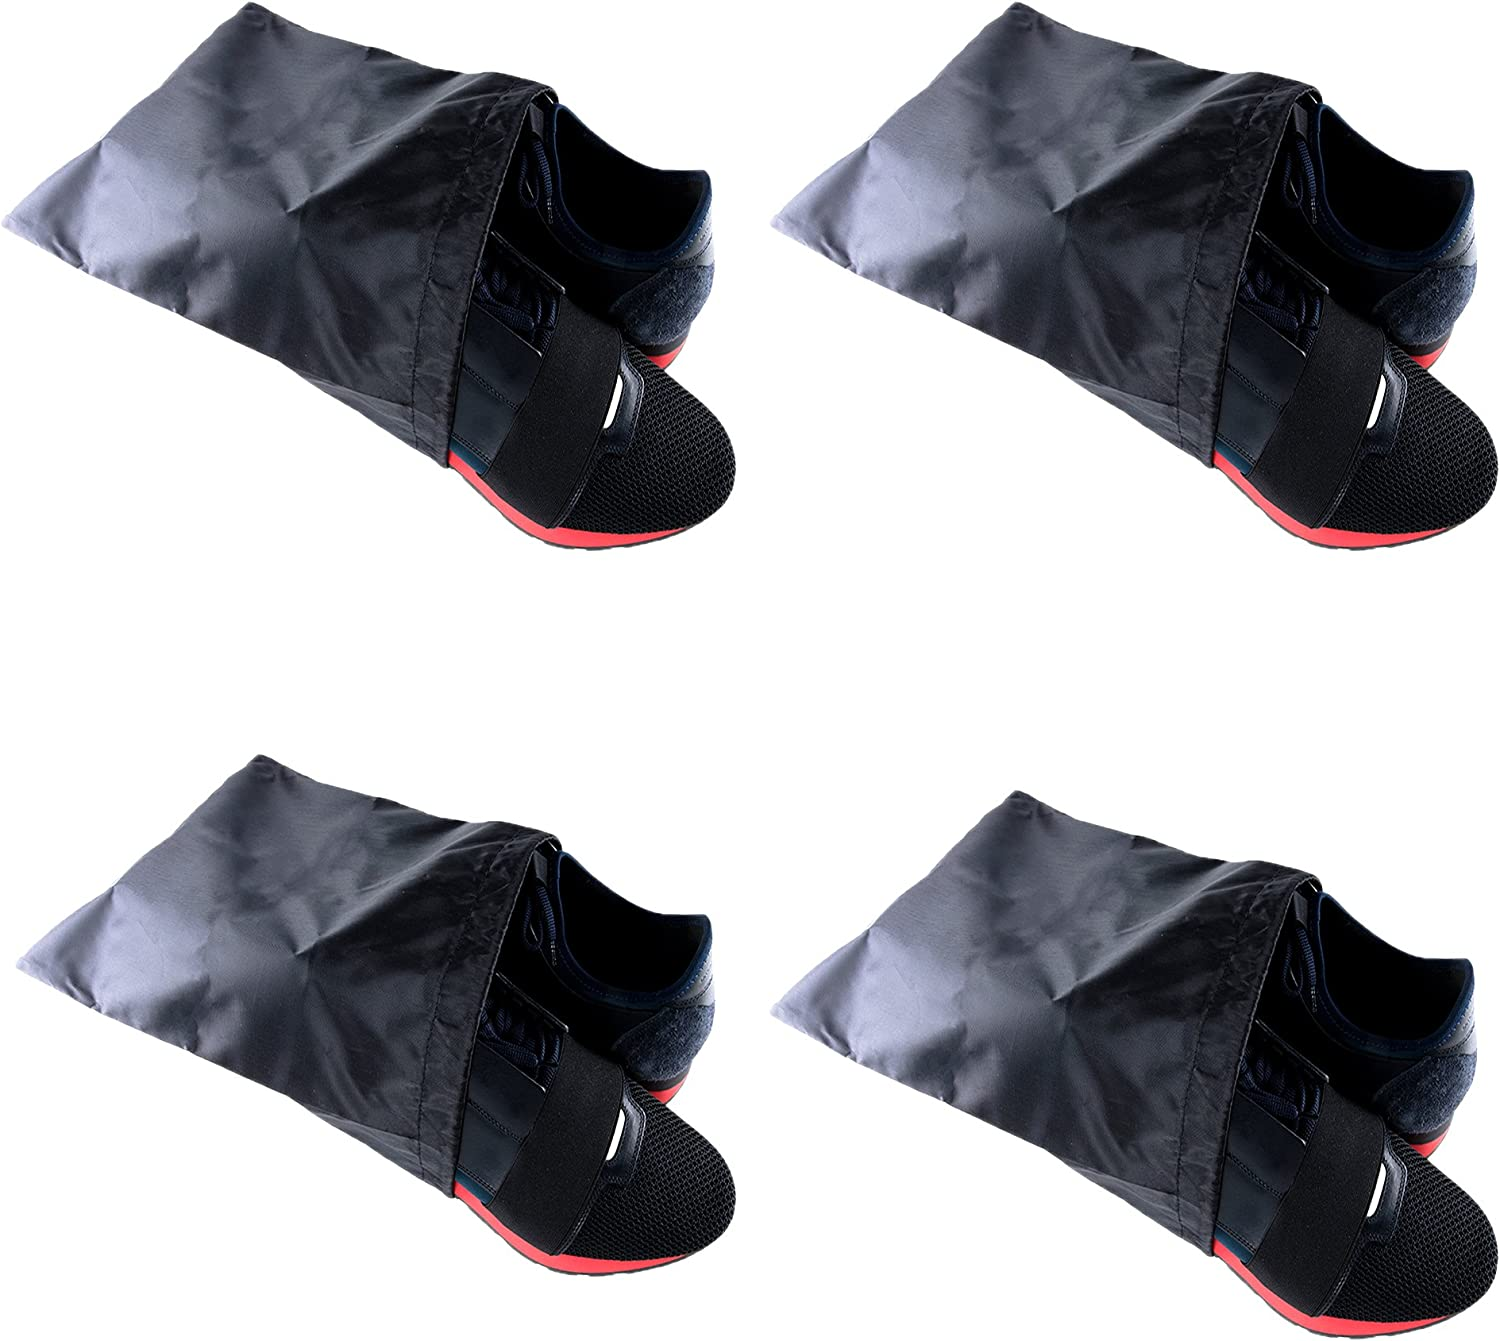 """Waterproof Nylon Dust-Proof Travel Bags with Drawstring Closure for Shoes Footwear Protection, Space Saving, Closet Home Organization Gift 15"""" x 12"""" (3 Pack): Home & Kitchen"""